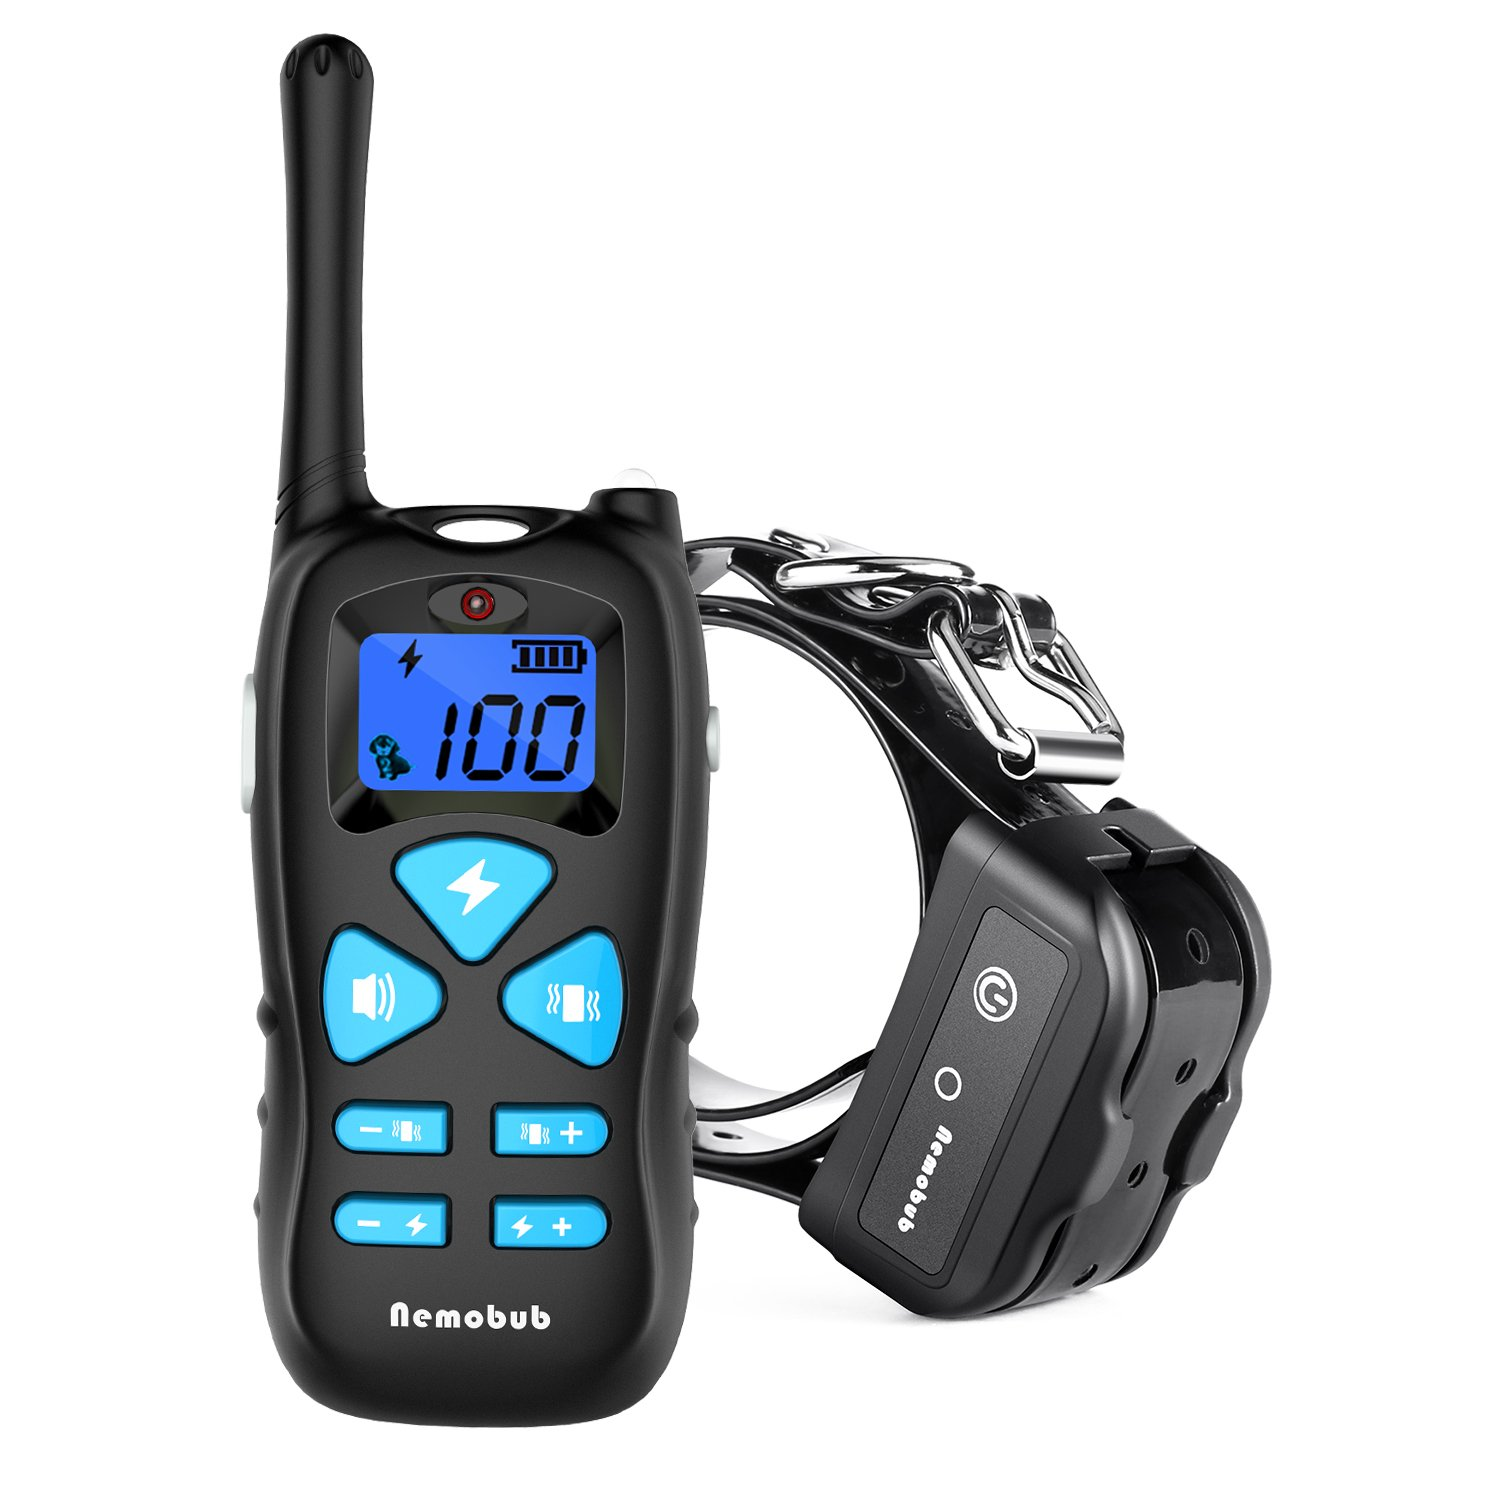 Nemobub Dog Shock Collar 1600ft Remote Training and 100% Waterproof Rechargeable Shock Collar with Beep Vibration and Electric Dog Collar for All Size Dogs